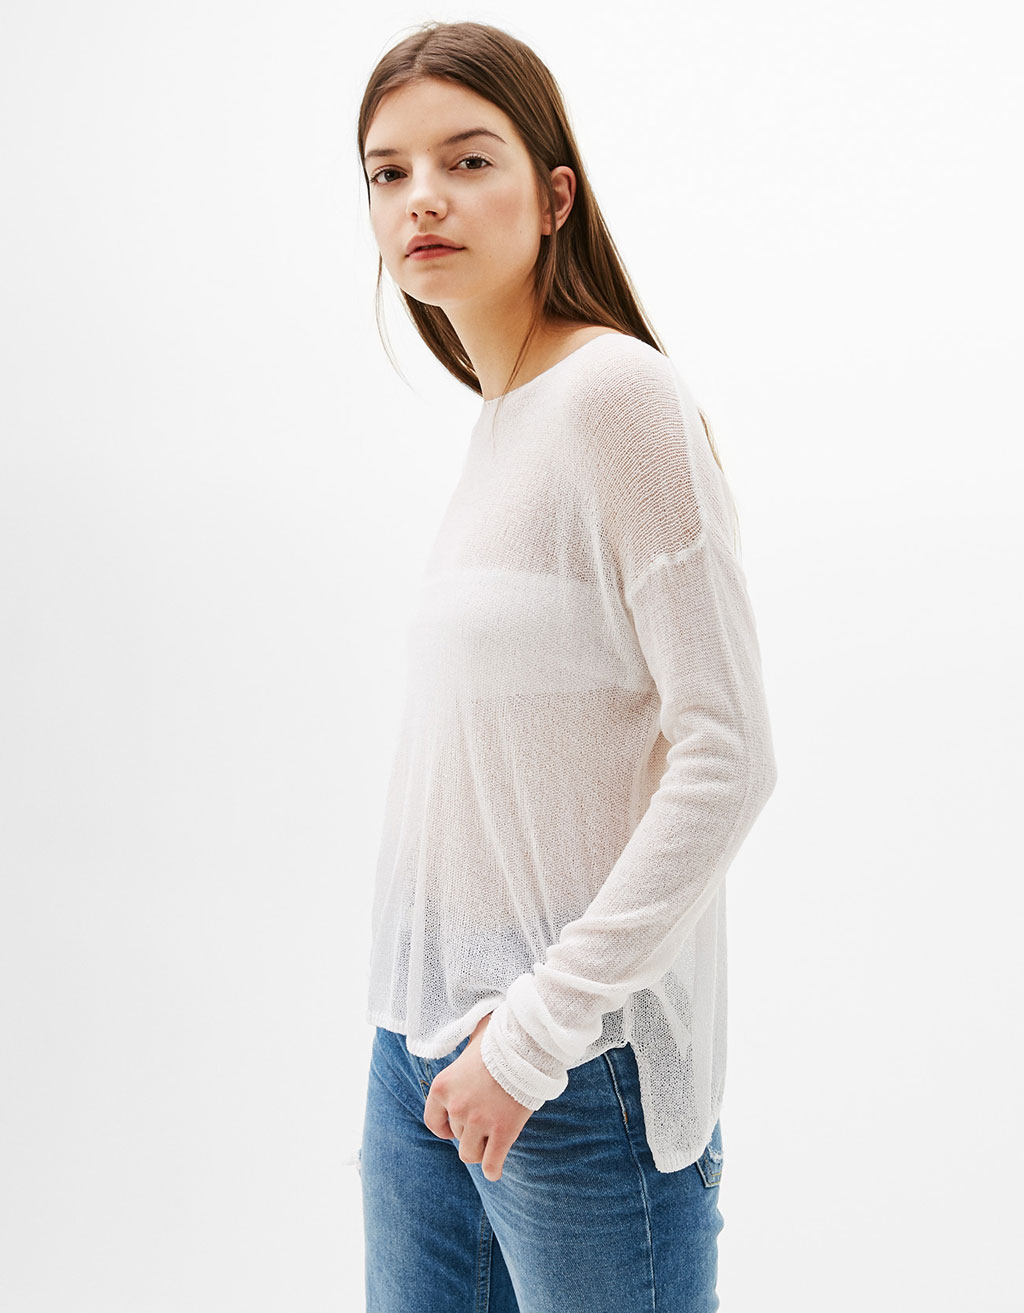 Oversized sweater with sheer trims